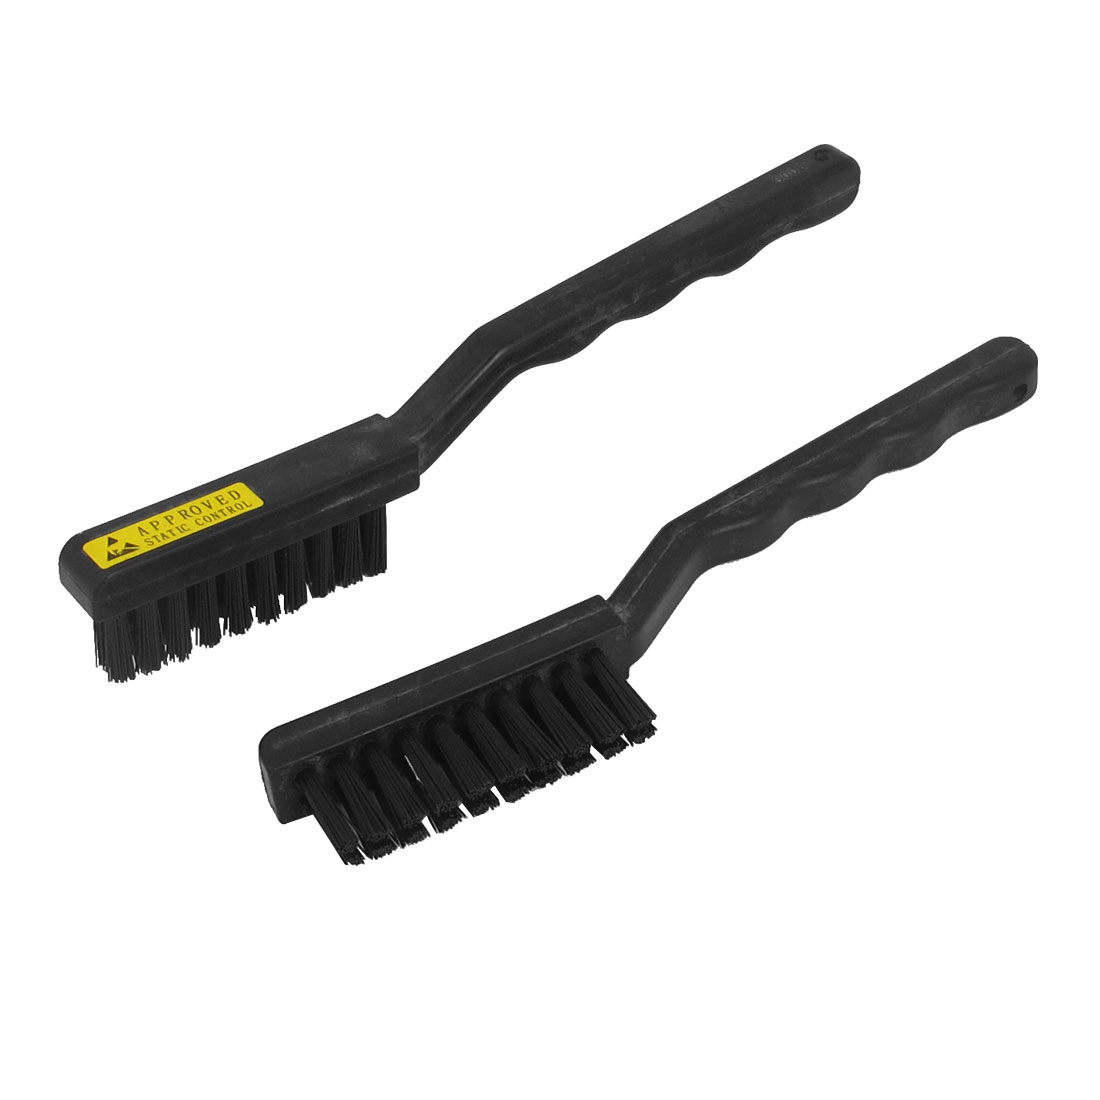 17.5cm Long Black Plastic Handle PCB Circuit Board Cleaning Anti Static Dust Brush 2pcs